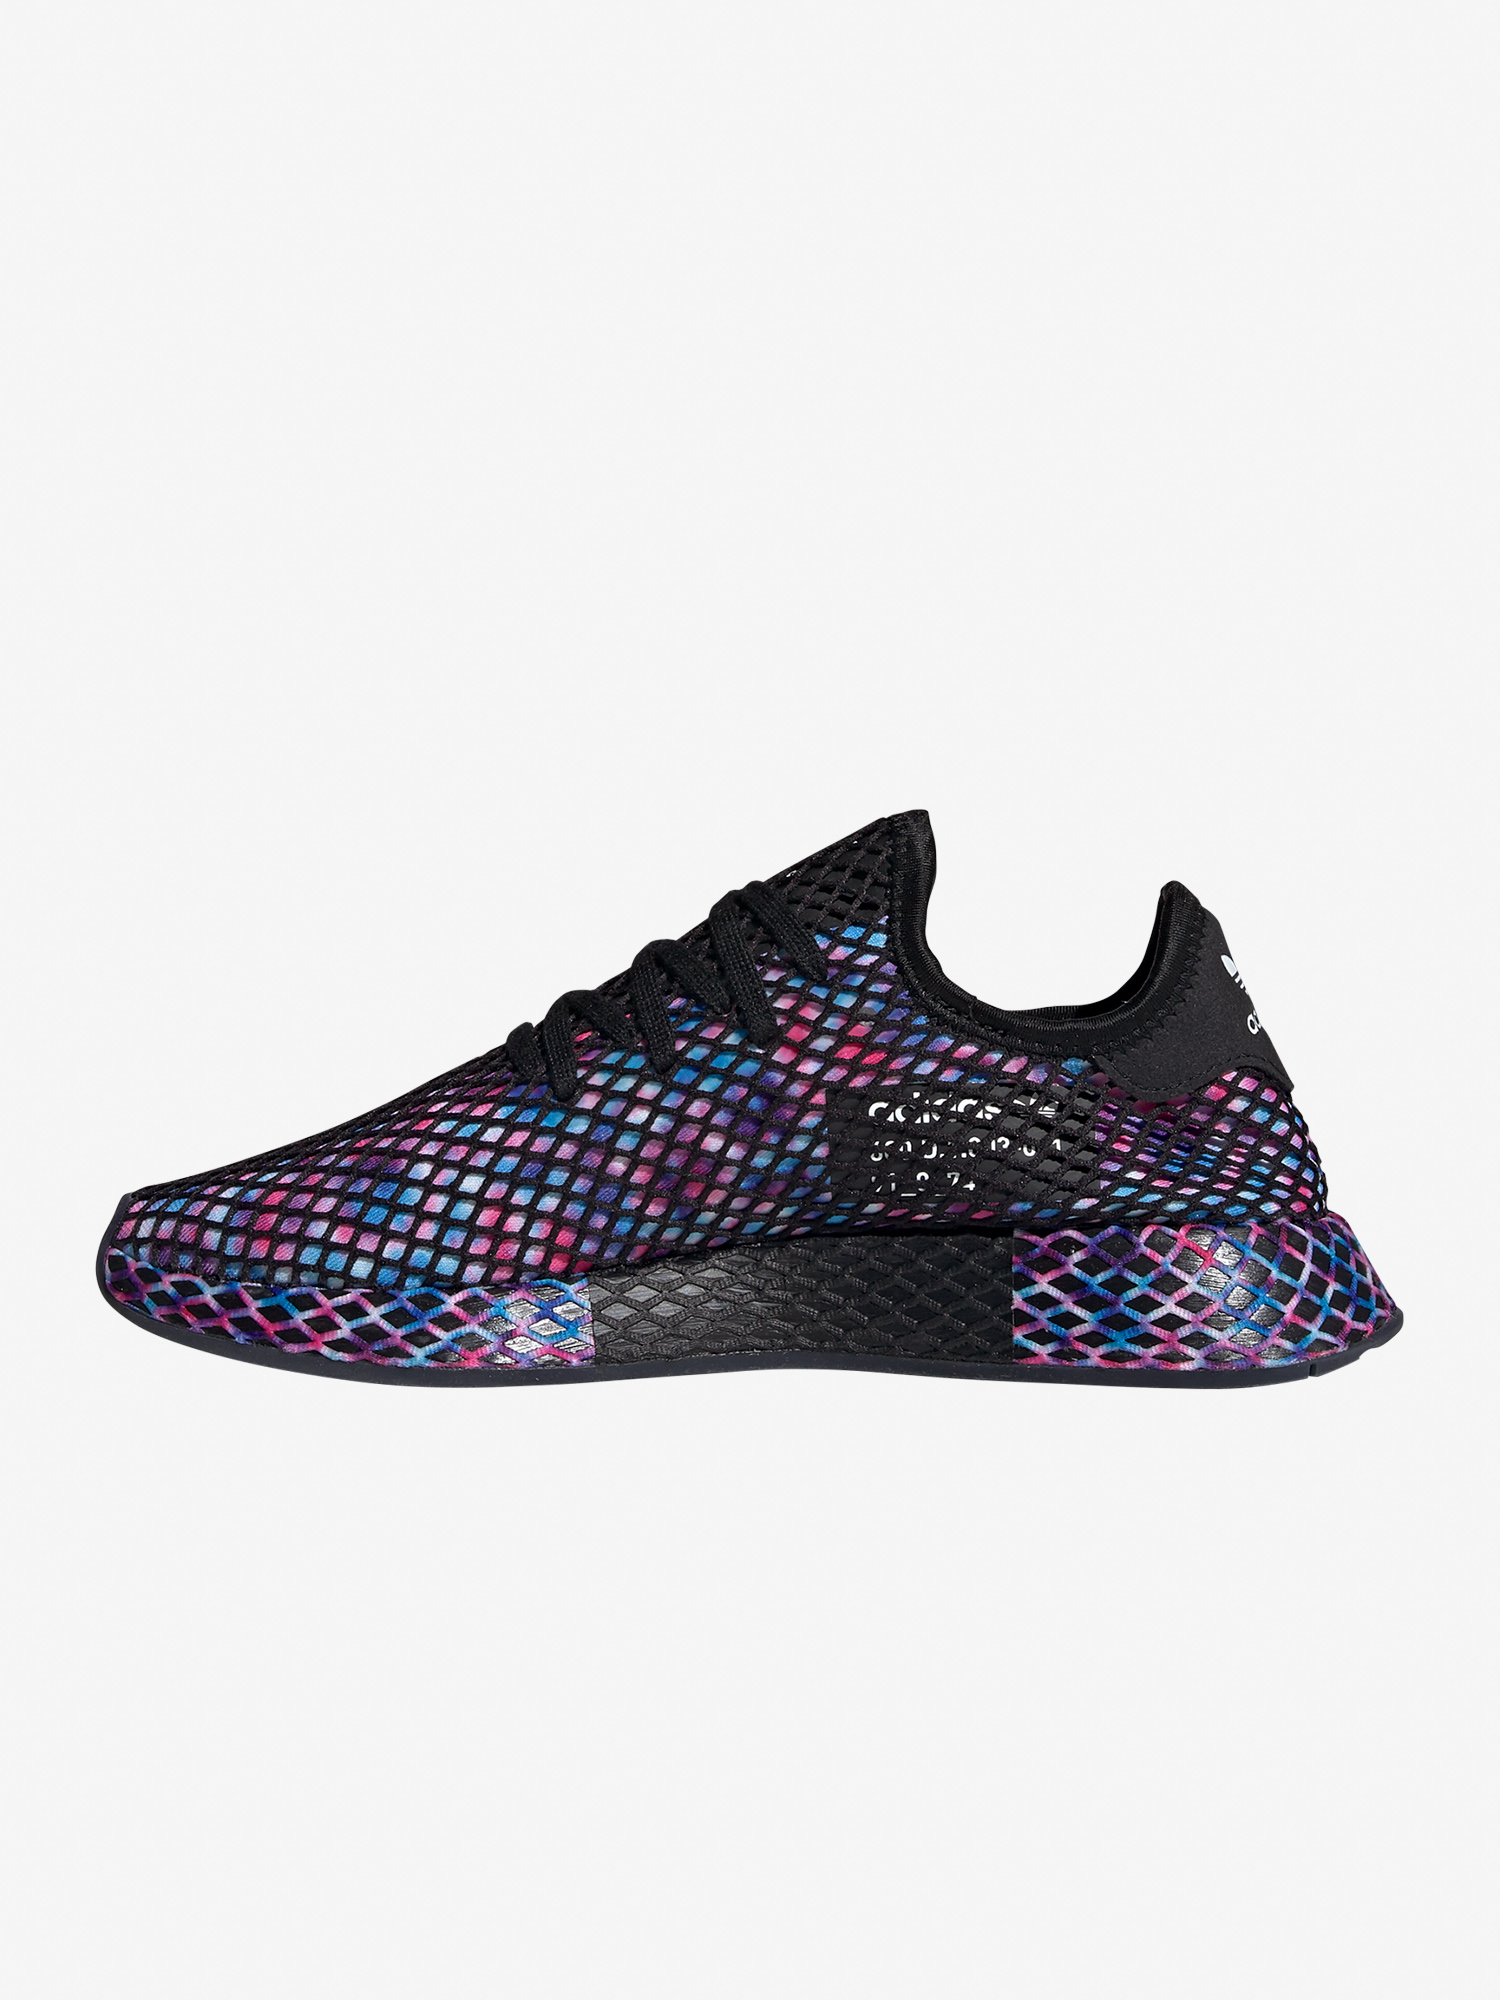 shades of pretty nice offer discounts Boty adidas Originals Deerupt Runner